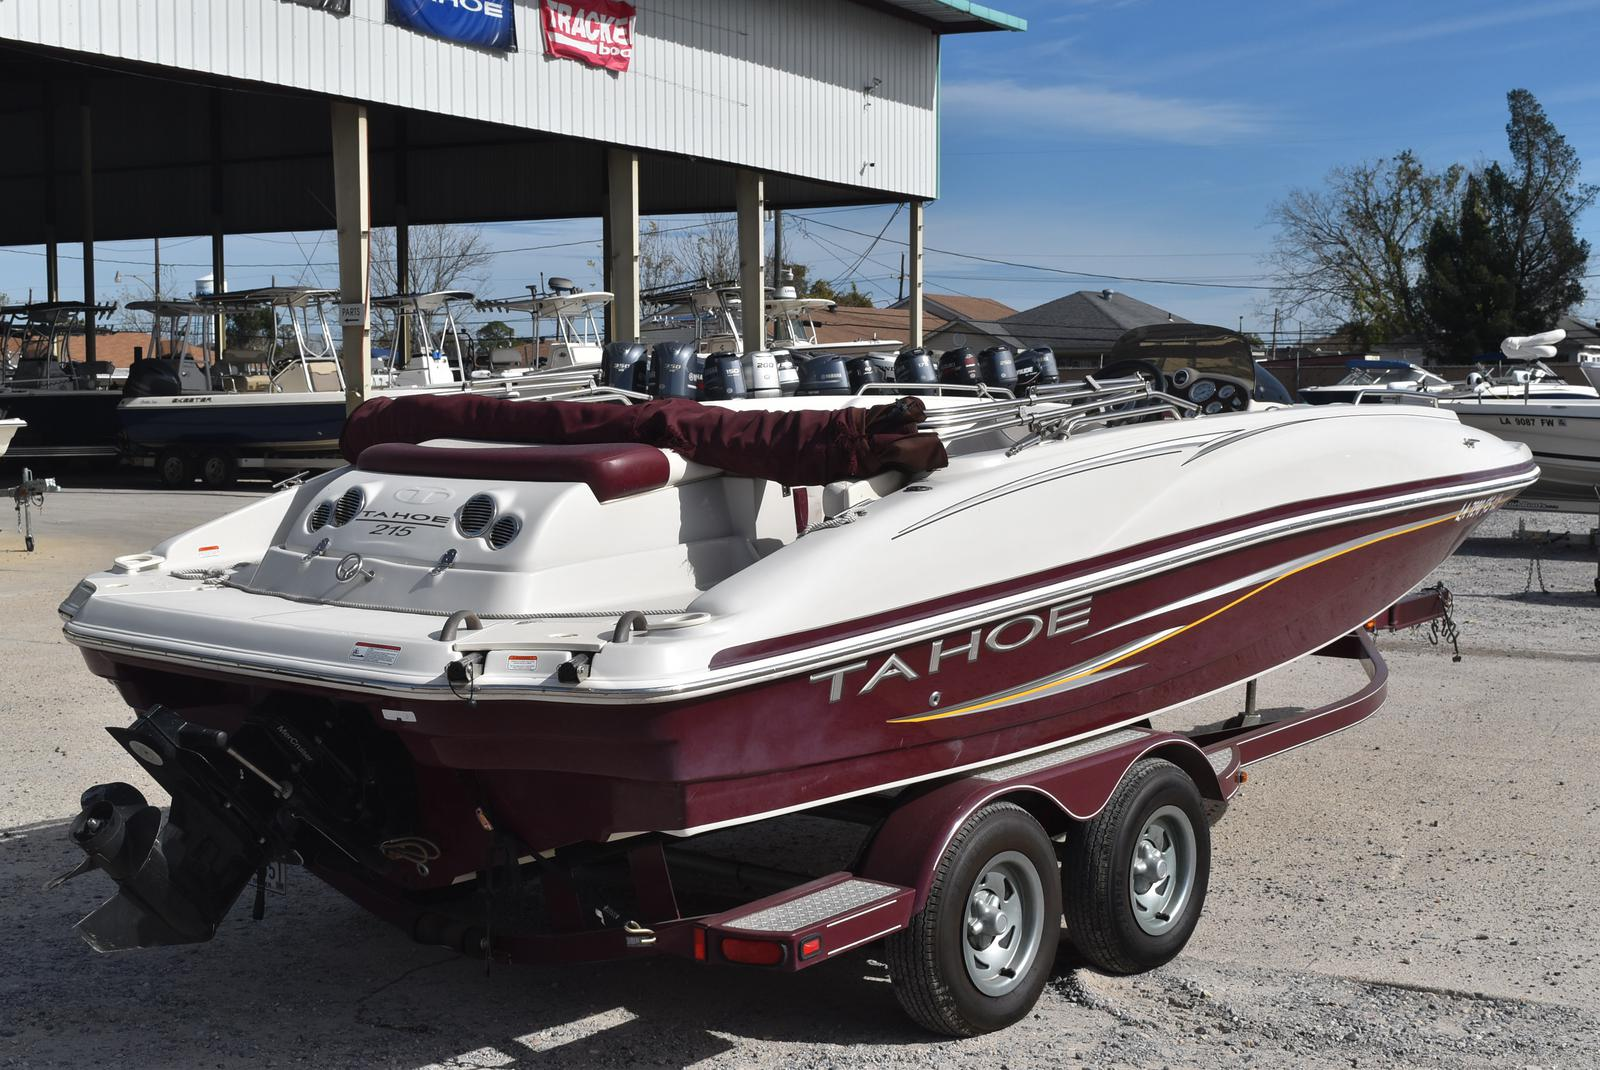 2008 Tahoe boat for sale, model of the boat is 215 & Image # 15 of 20